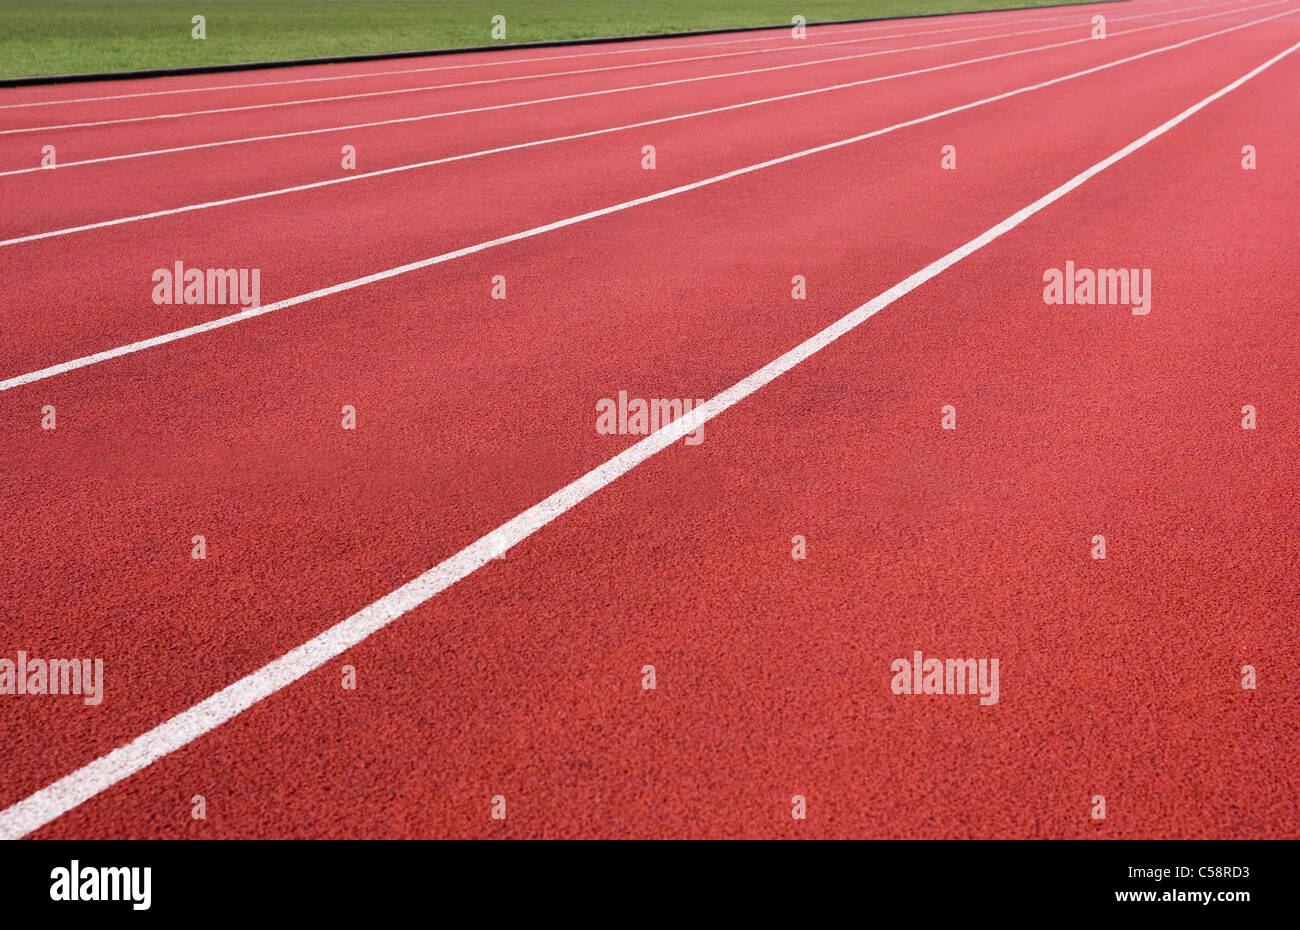 Running lanes of an athletics track stretching off into the distance. - Stock Image